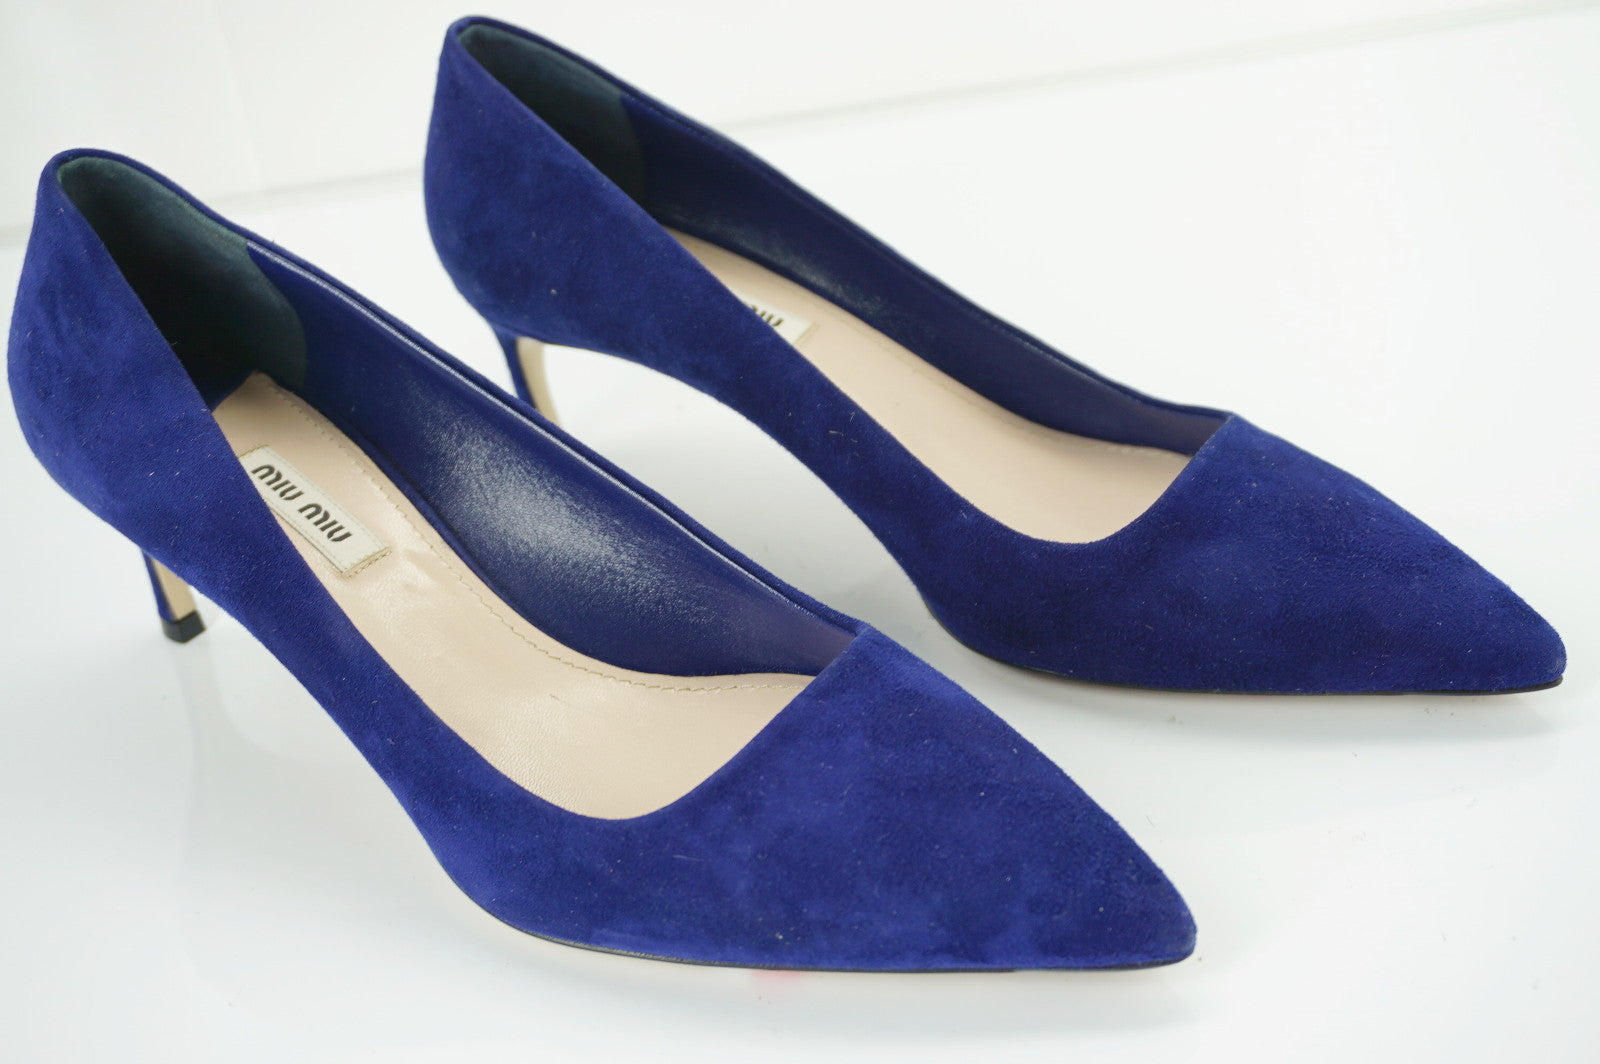 Miu Miu Blue Suede Pointy Toe Mid Heel Pumps Size 40 10 New $590